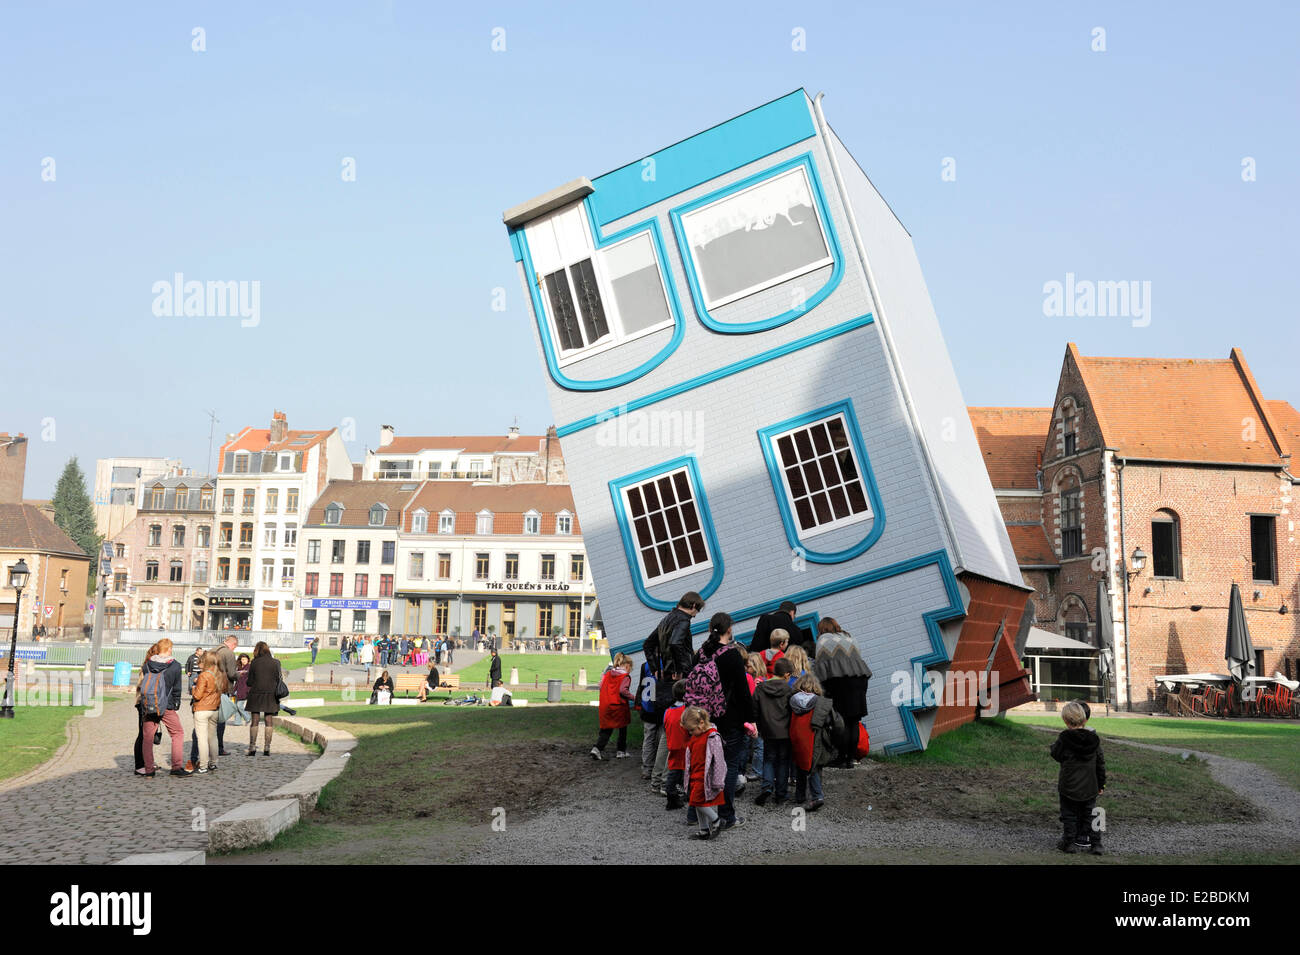 France, Nord , Lille, Lille 3000 Fantastic, House Fell from the Sky created by Jean Francois Fourtou - Stock Image